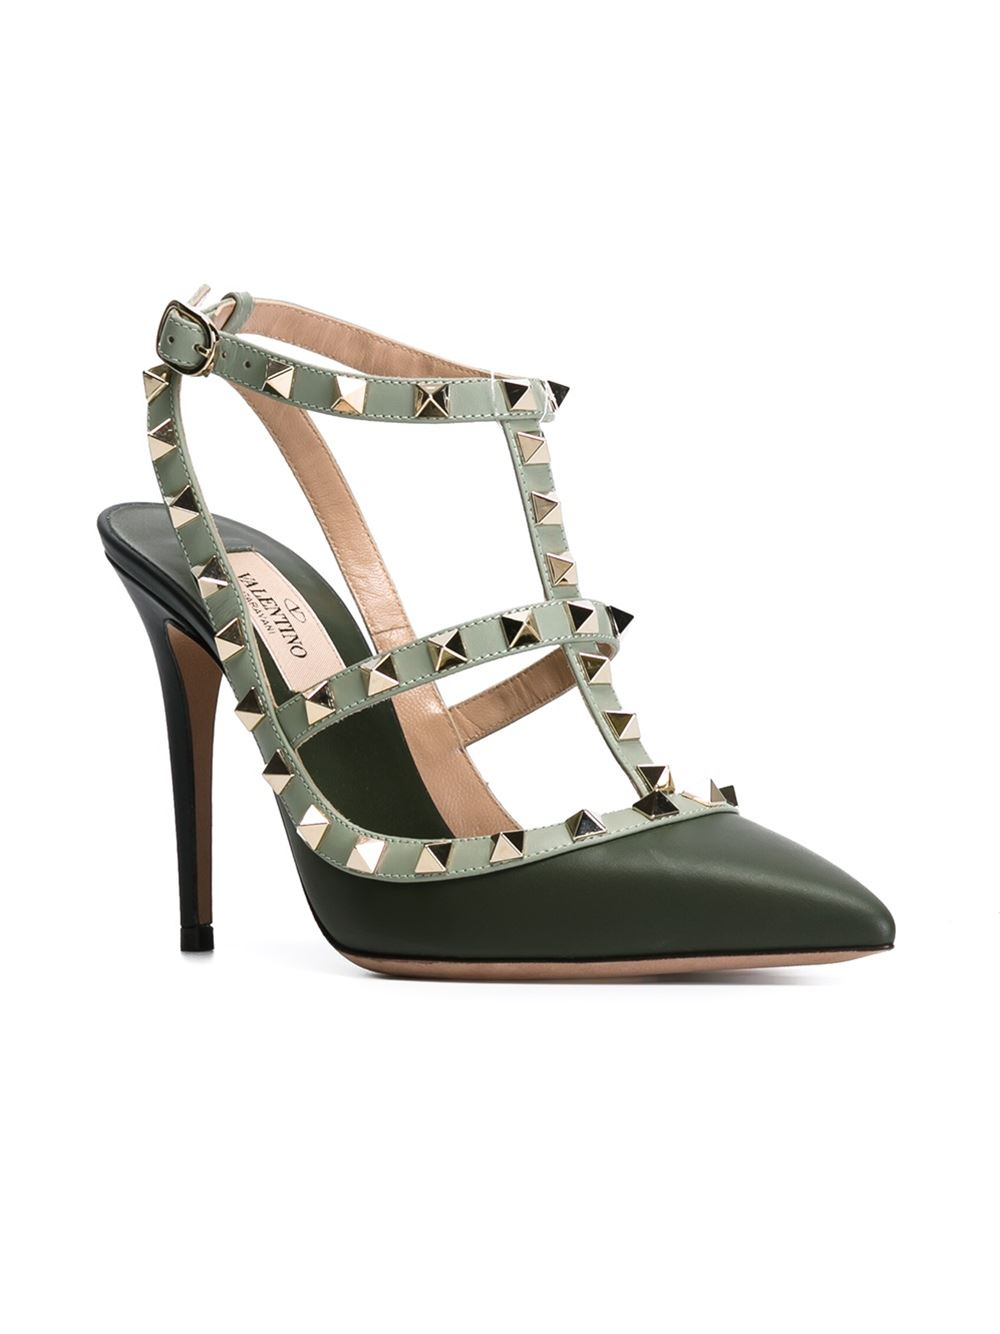 valentino 39 rockstud 39 pumps in green lyst. Black Bedroom Furniture Sets. Home Design Ideas